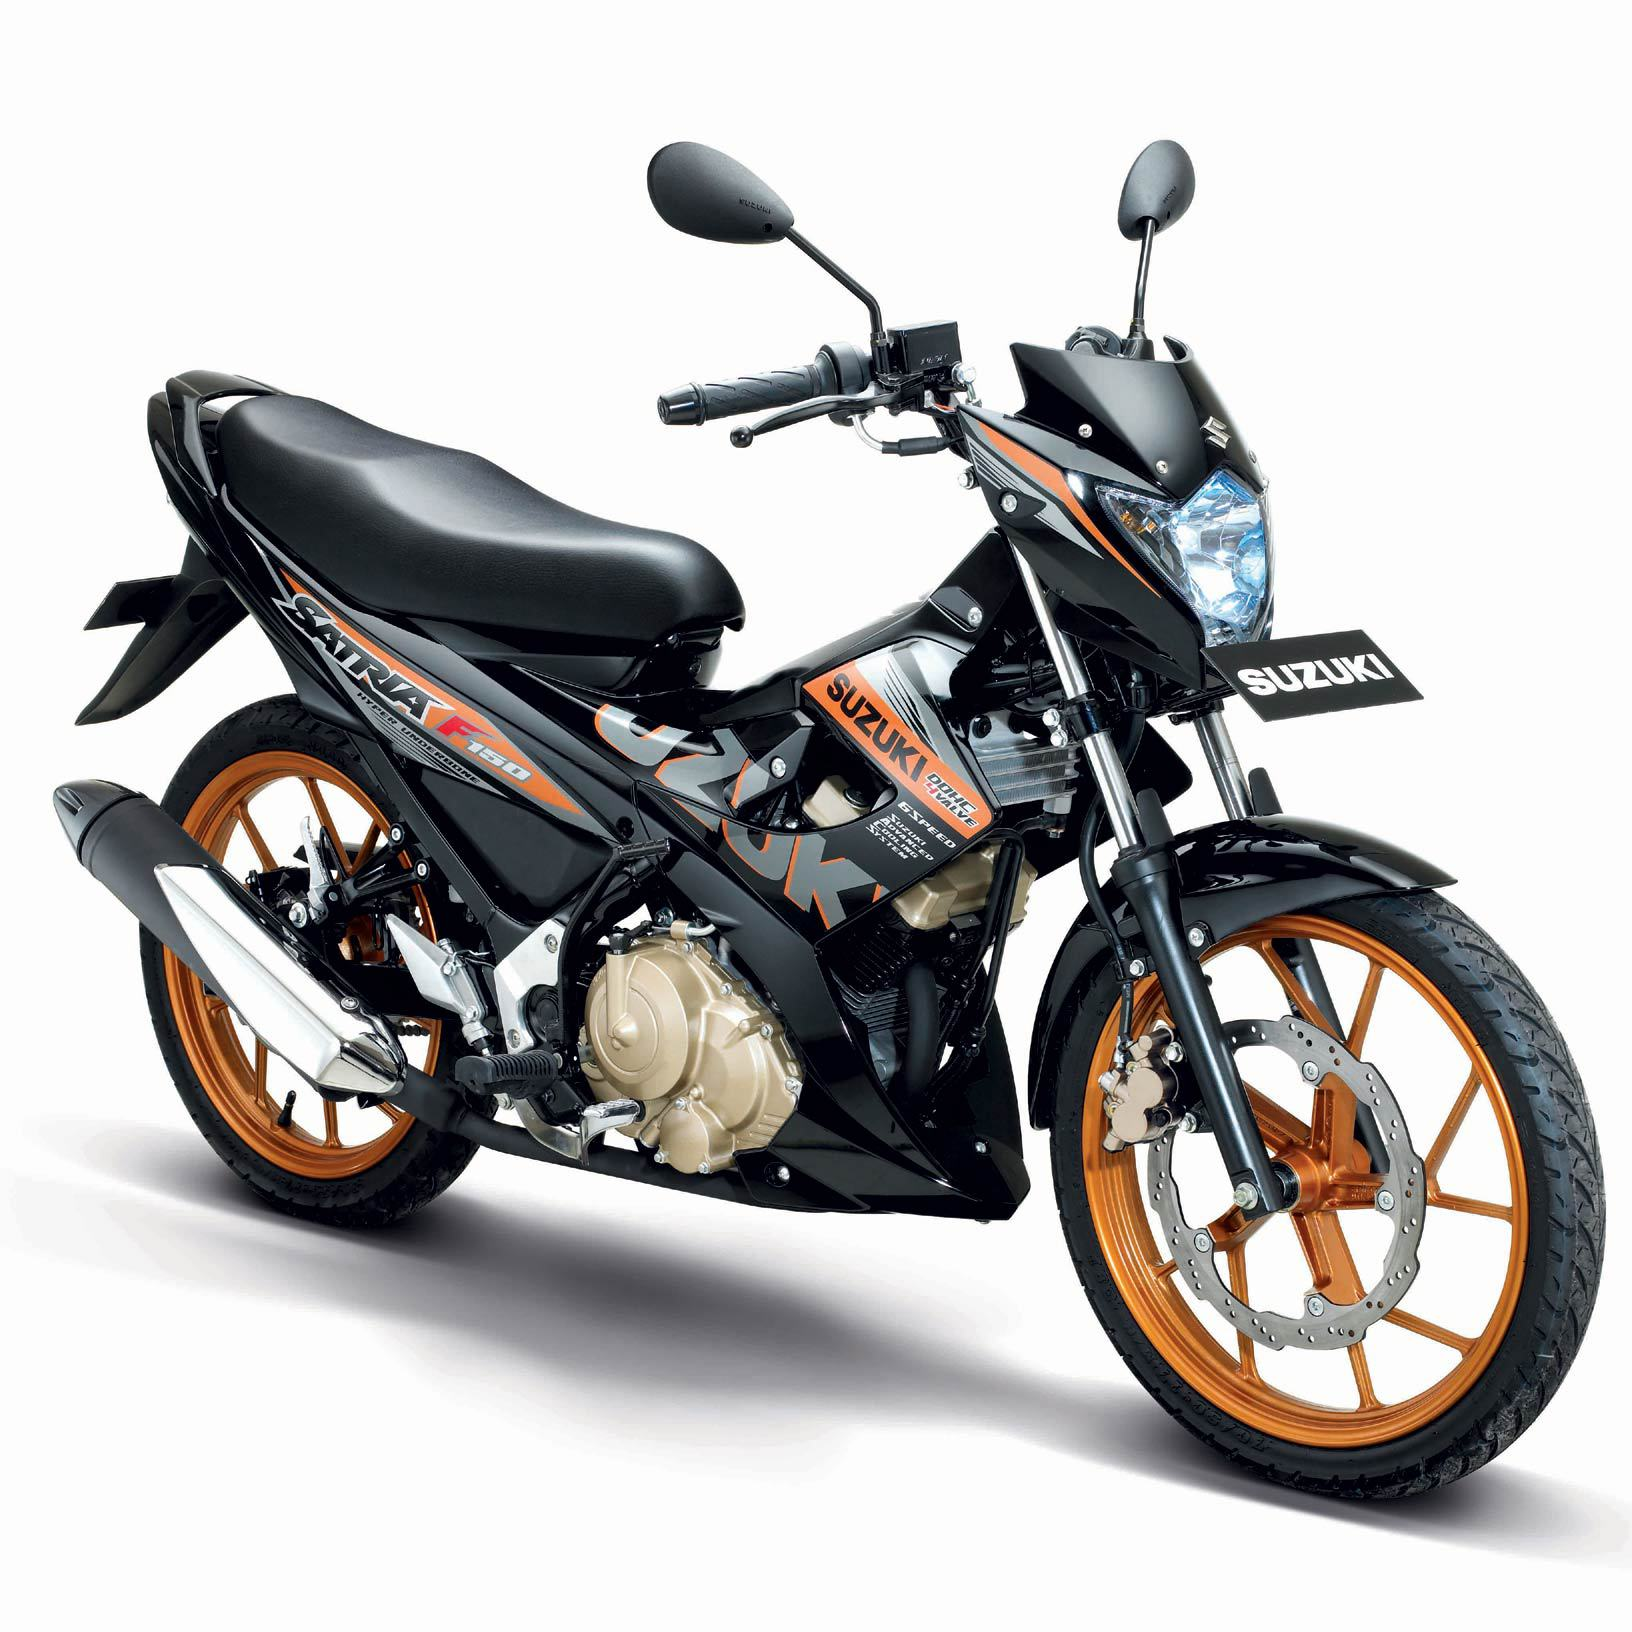 Jupiter MX King 150 Moncer New Honda Sonic 150 Tempel Ketat